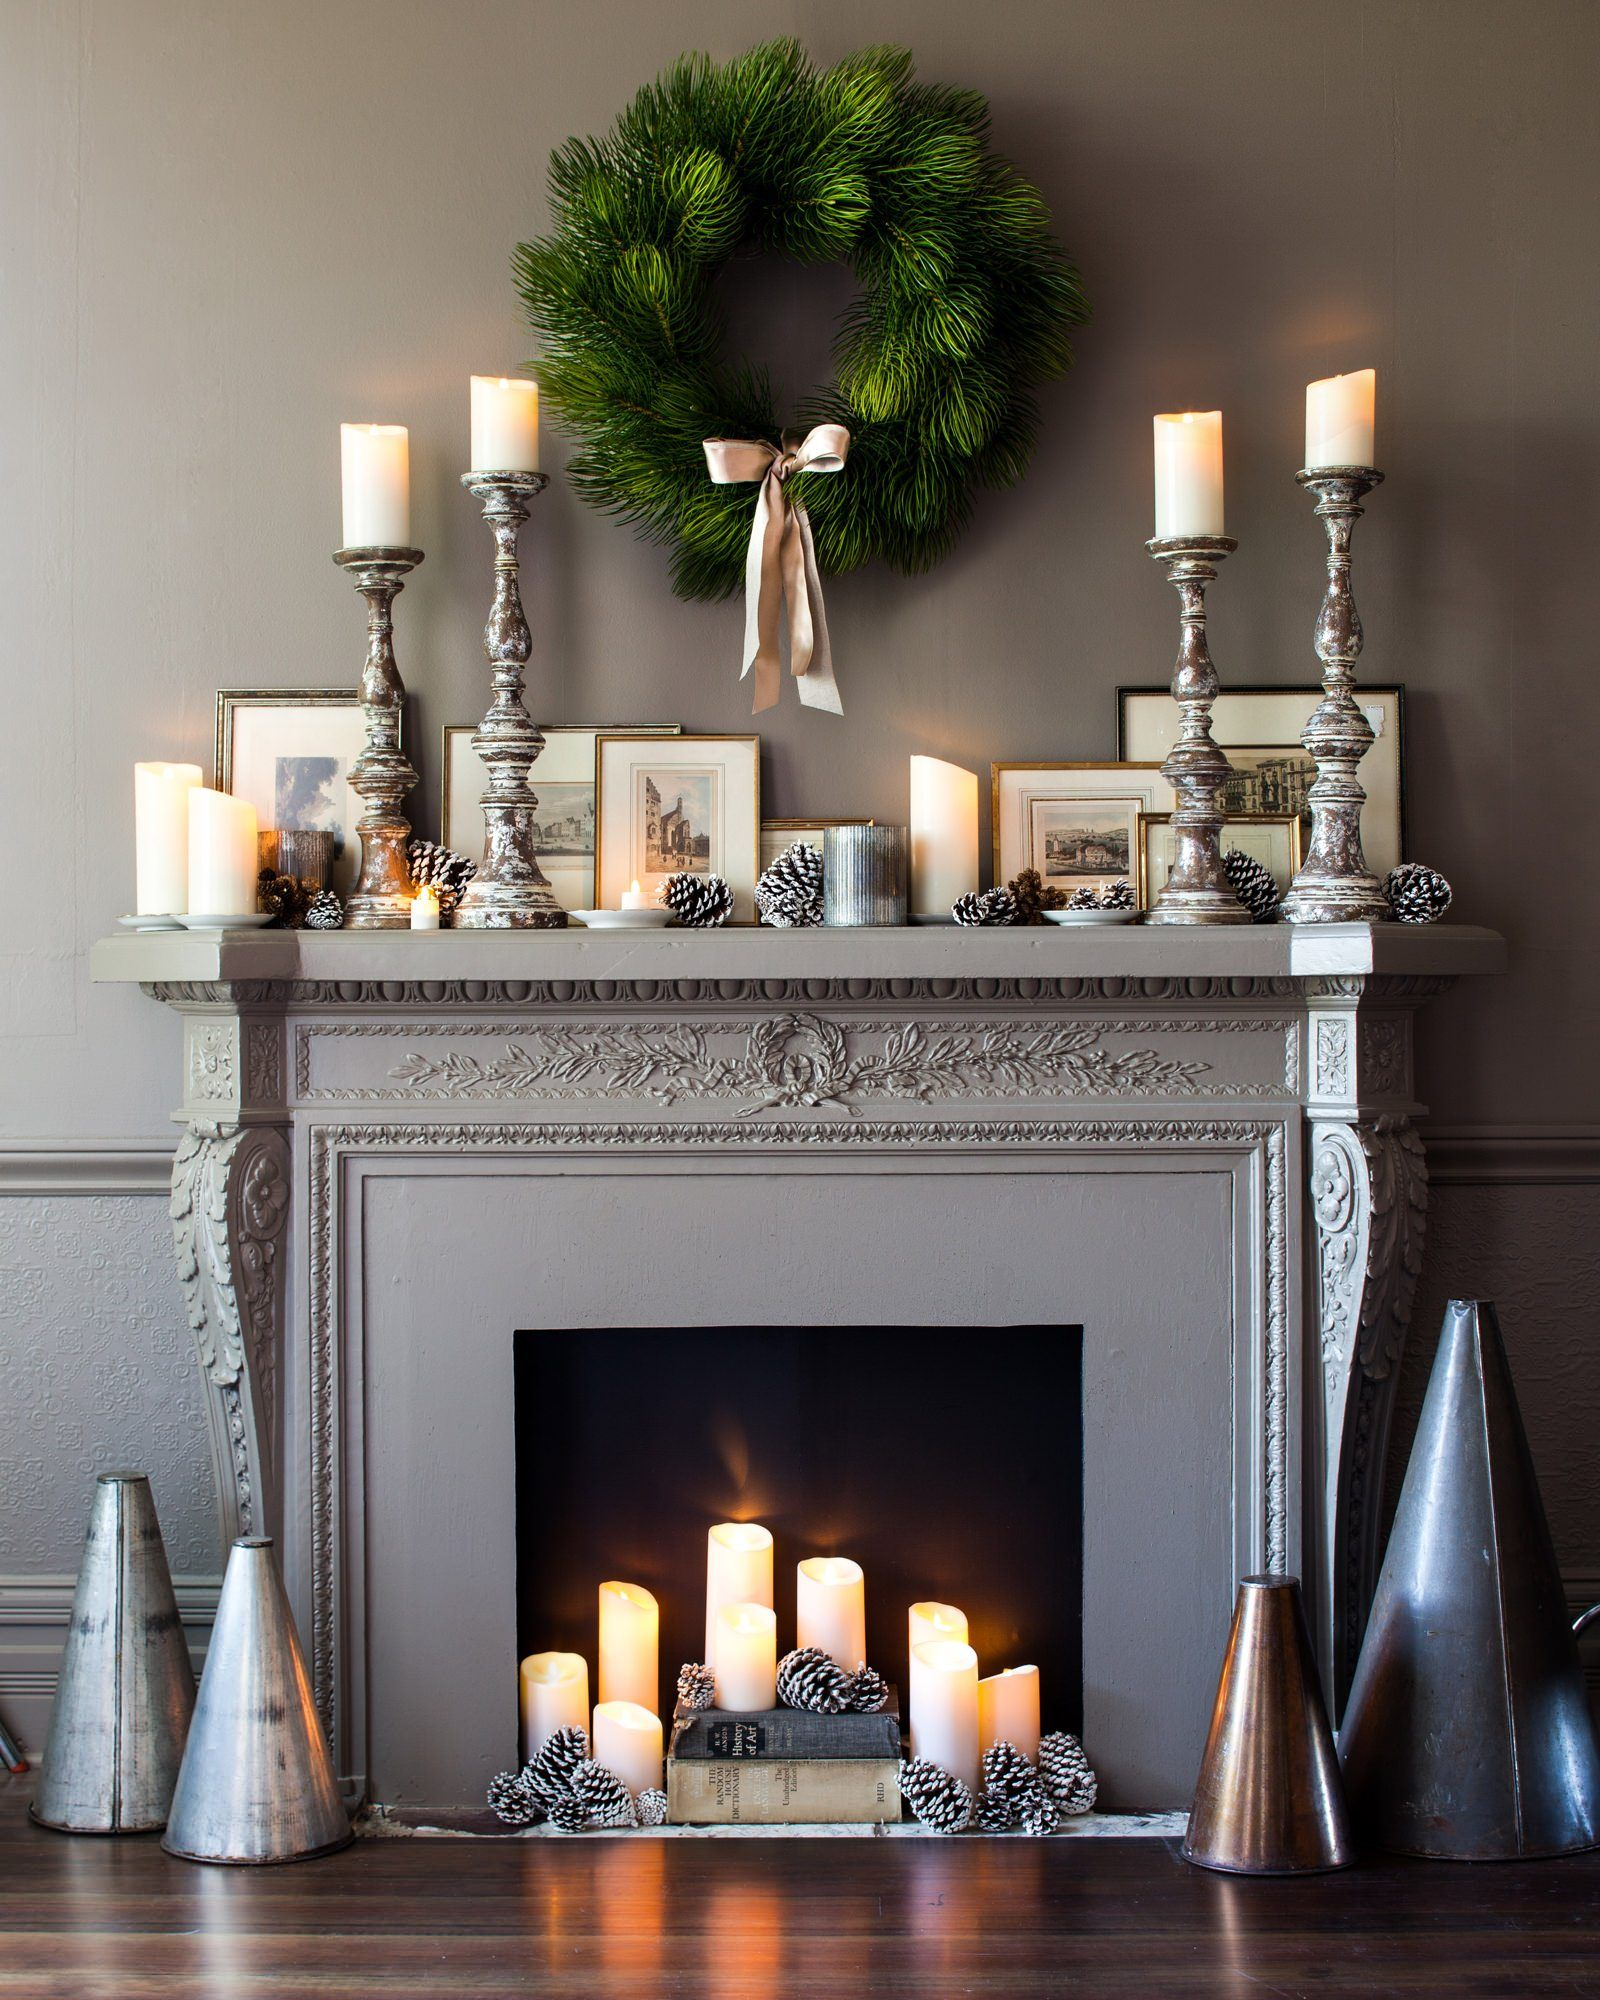 Decorating Fireplaces With Candles: Ivory Smooth Flicker Candle Pillar (Unscented, LED